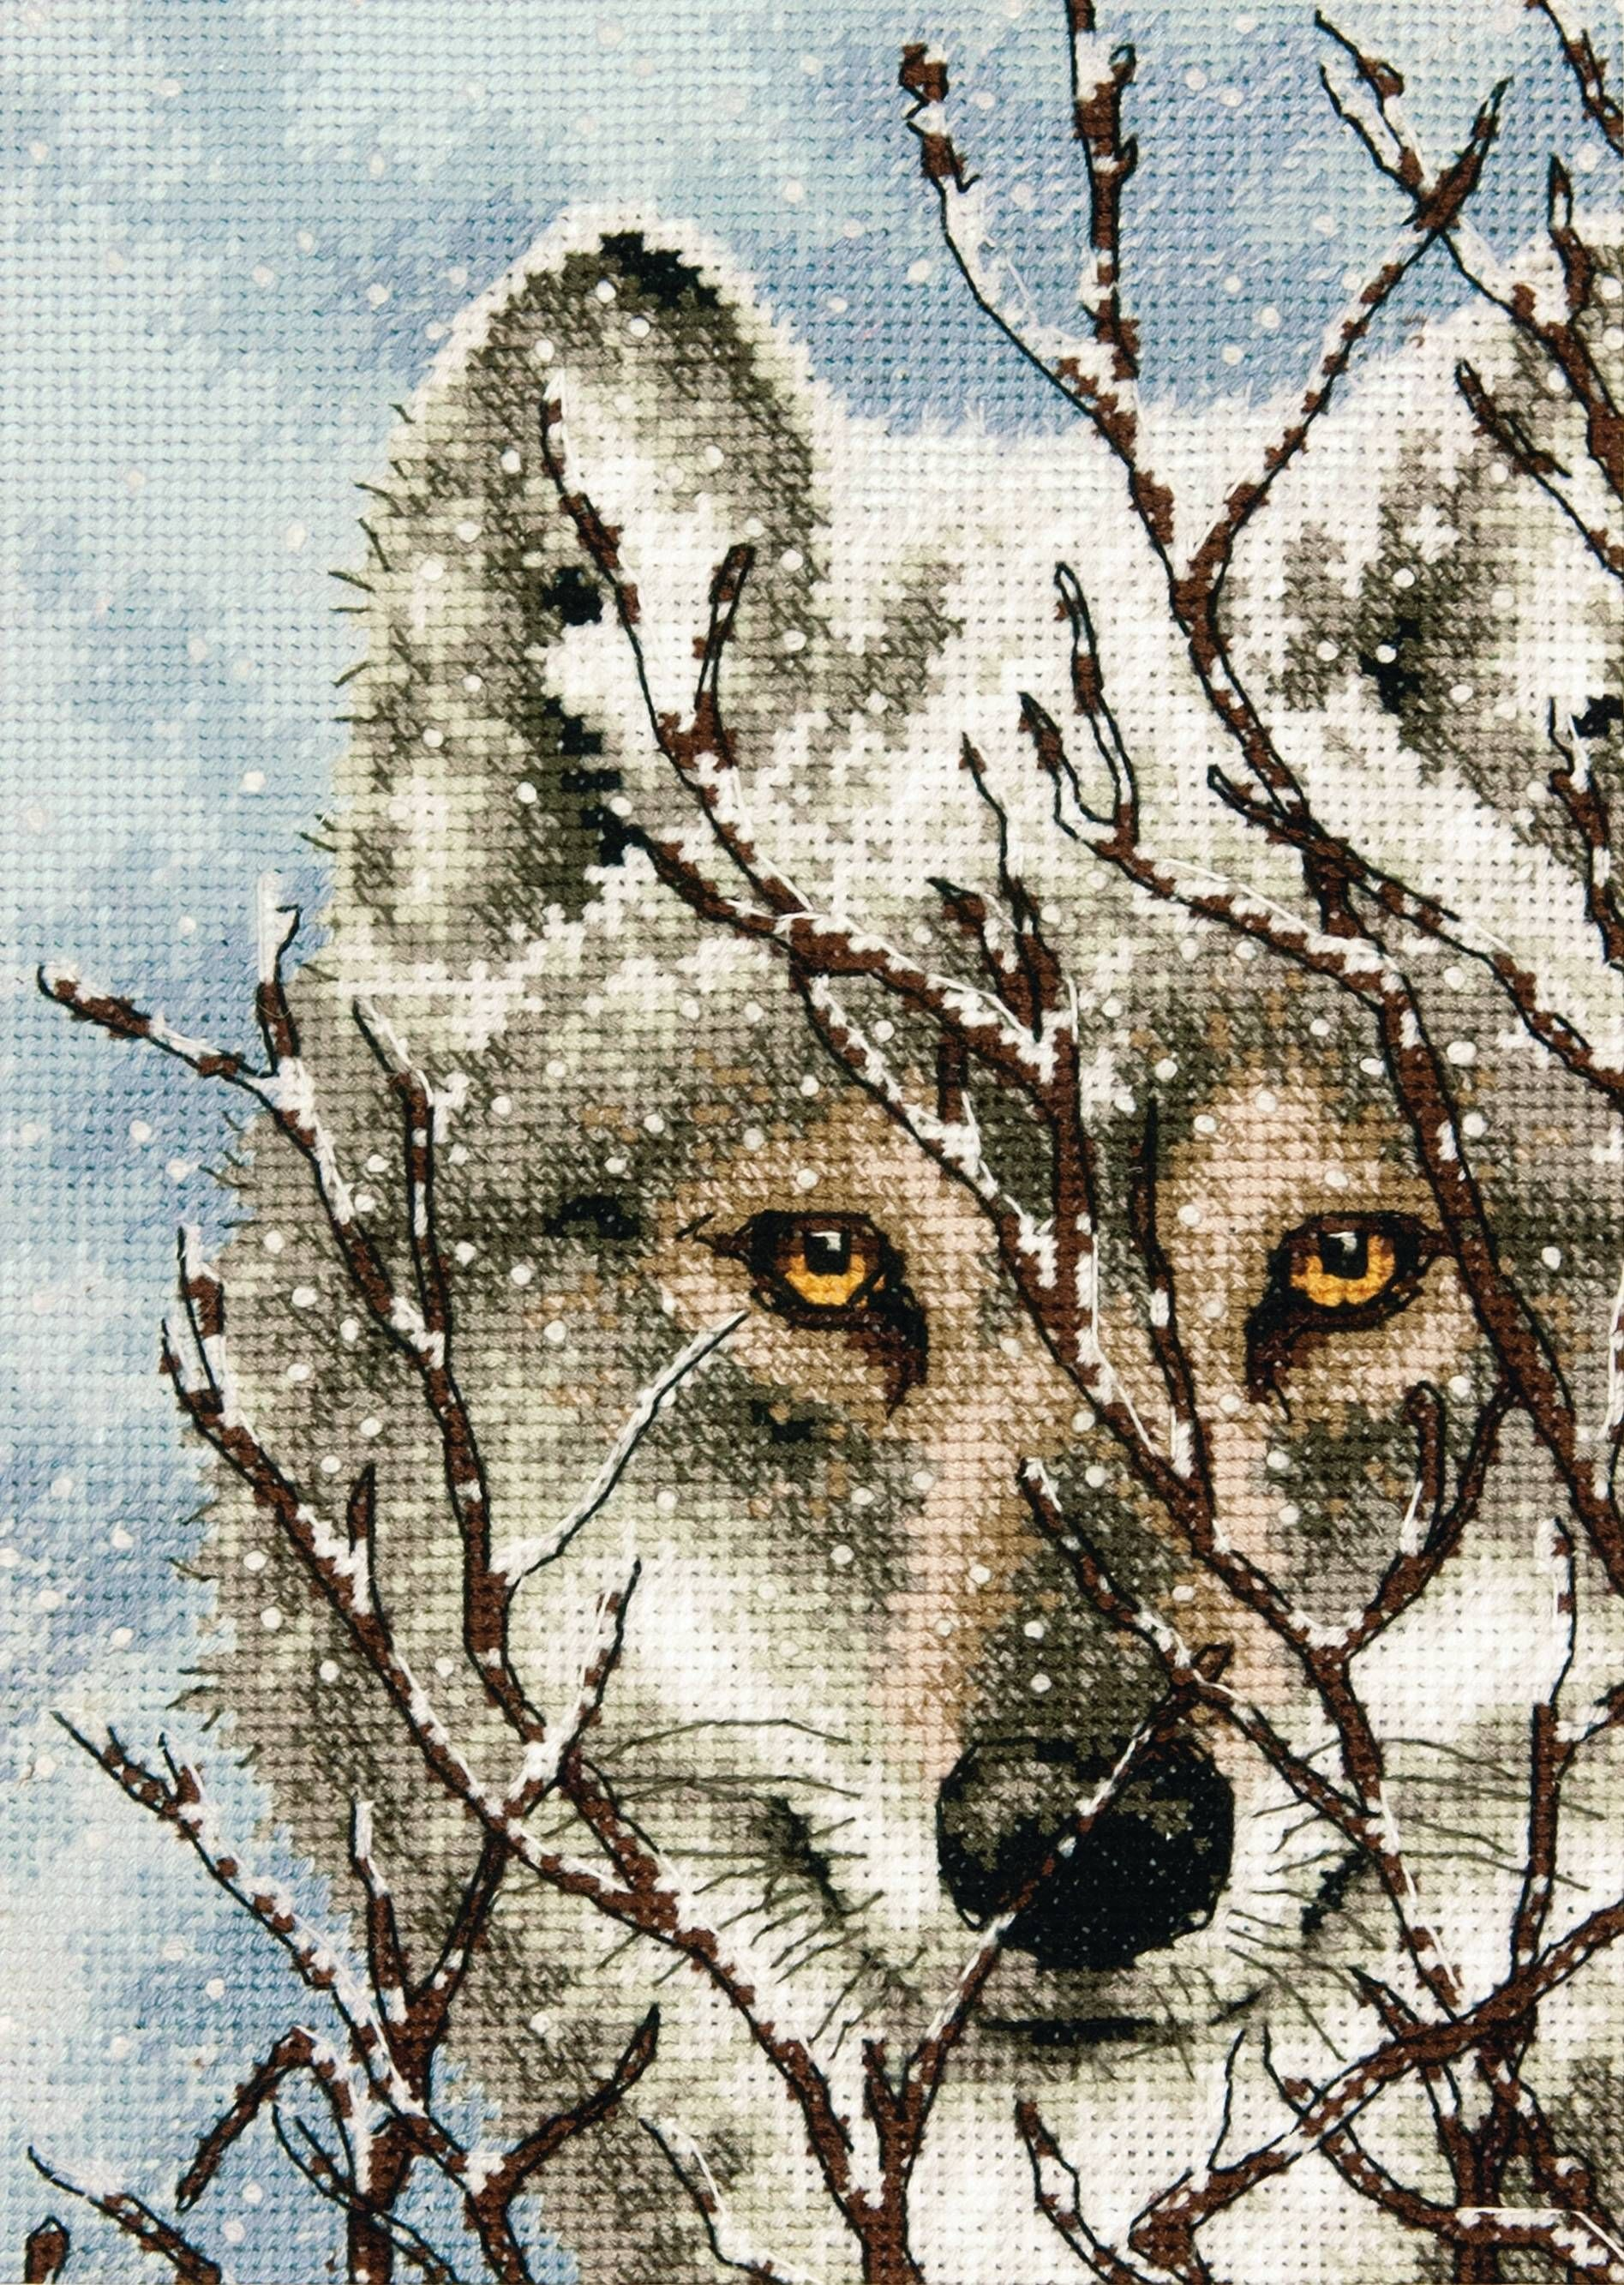 Loyal Indian And Wolf Religion Cross Stitch Fabric 14ct Counted Cross-stitch Kits Patterns Sets Chinese Embroidery Needlework Diy Gift Arts,crafts & Sewing